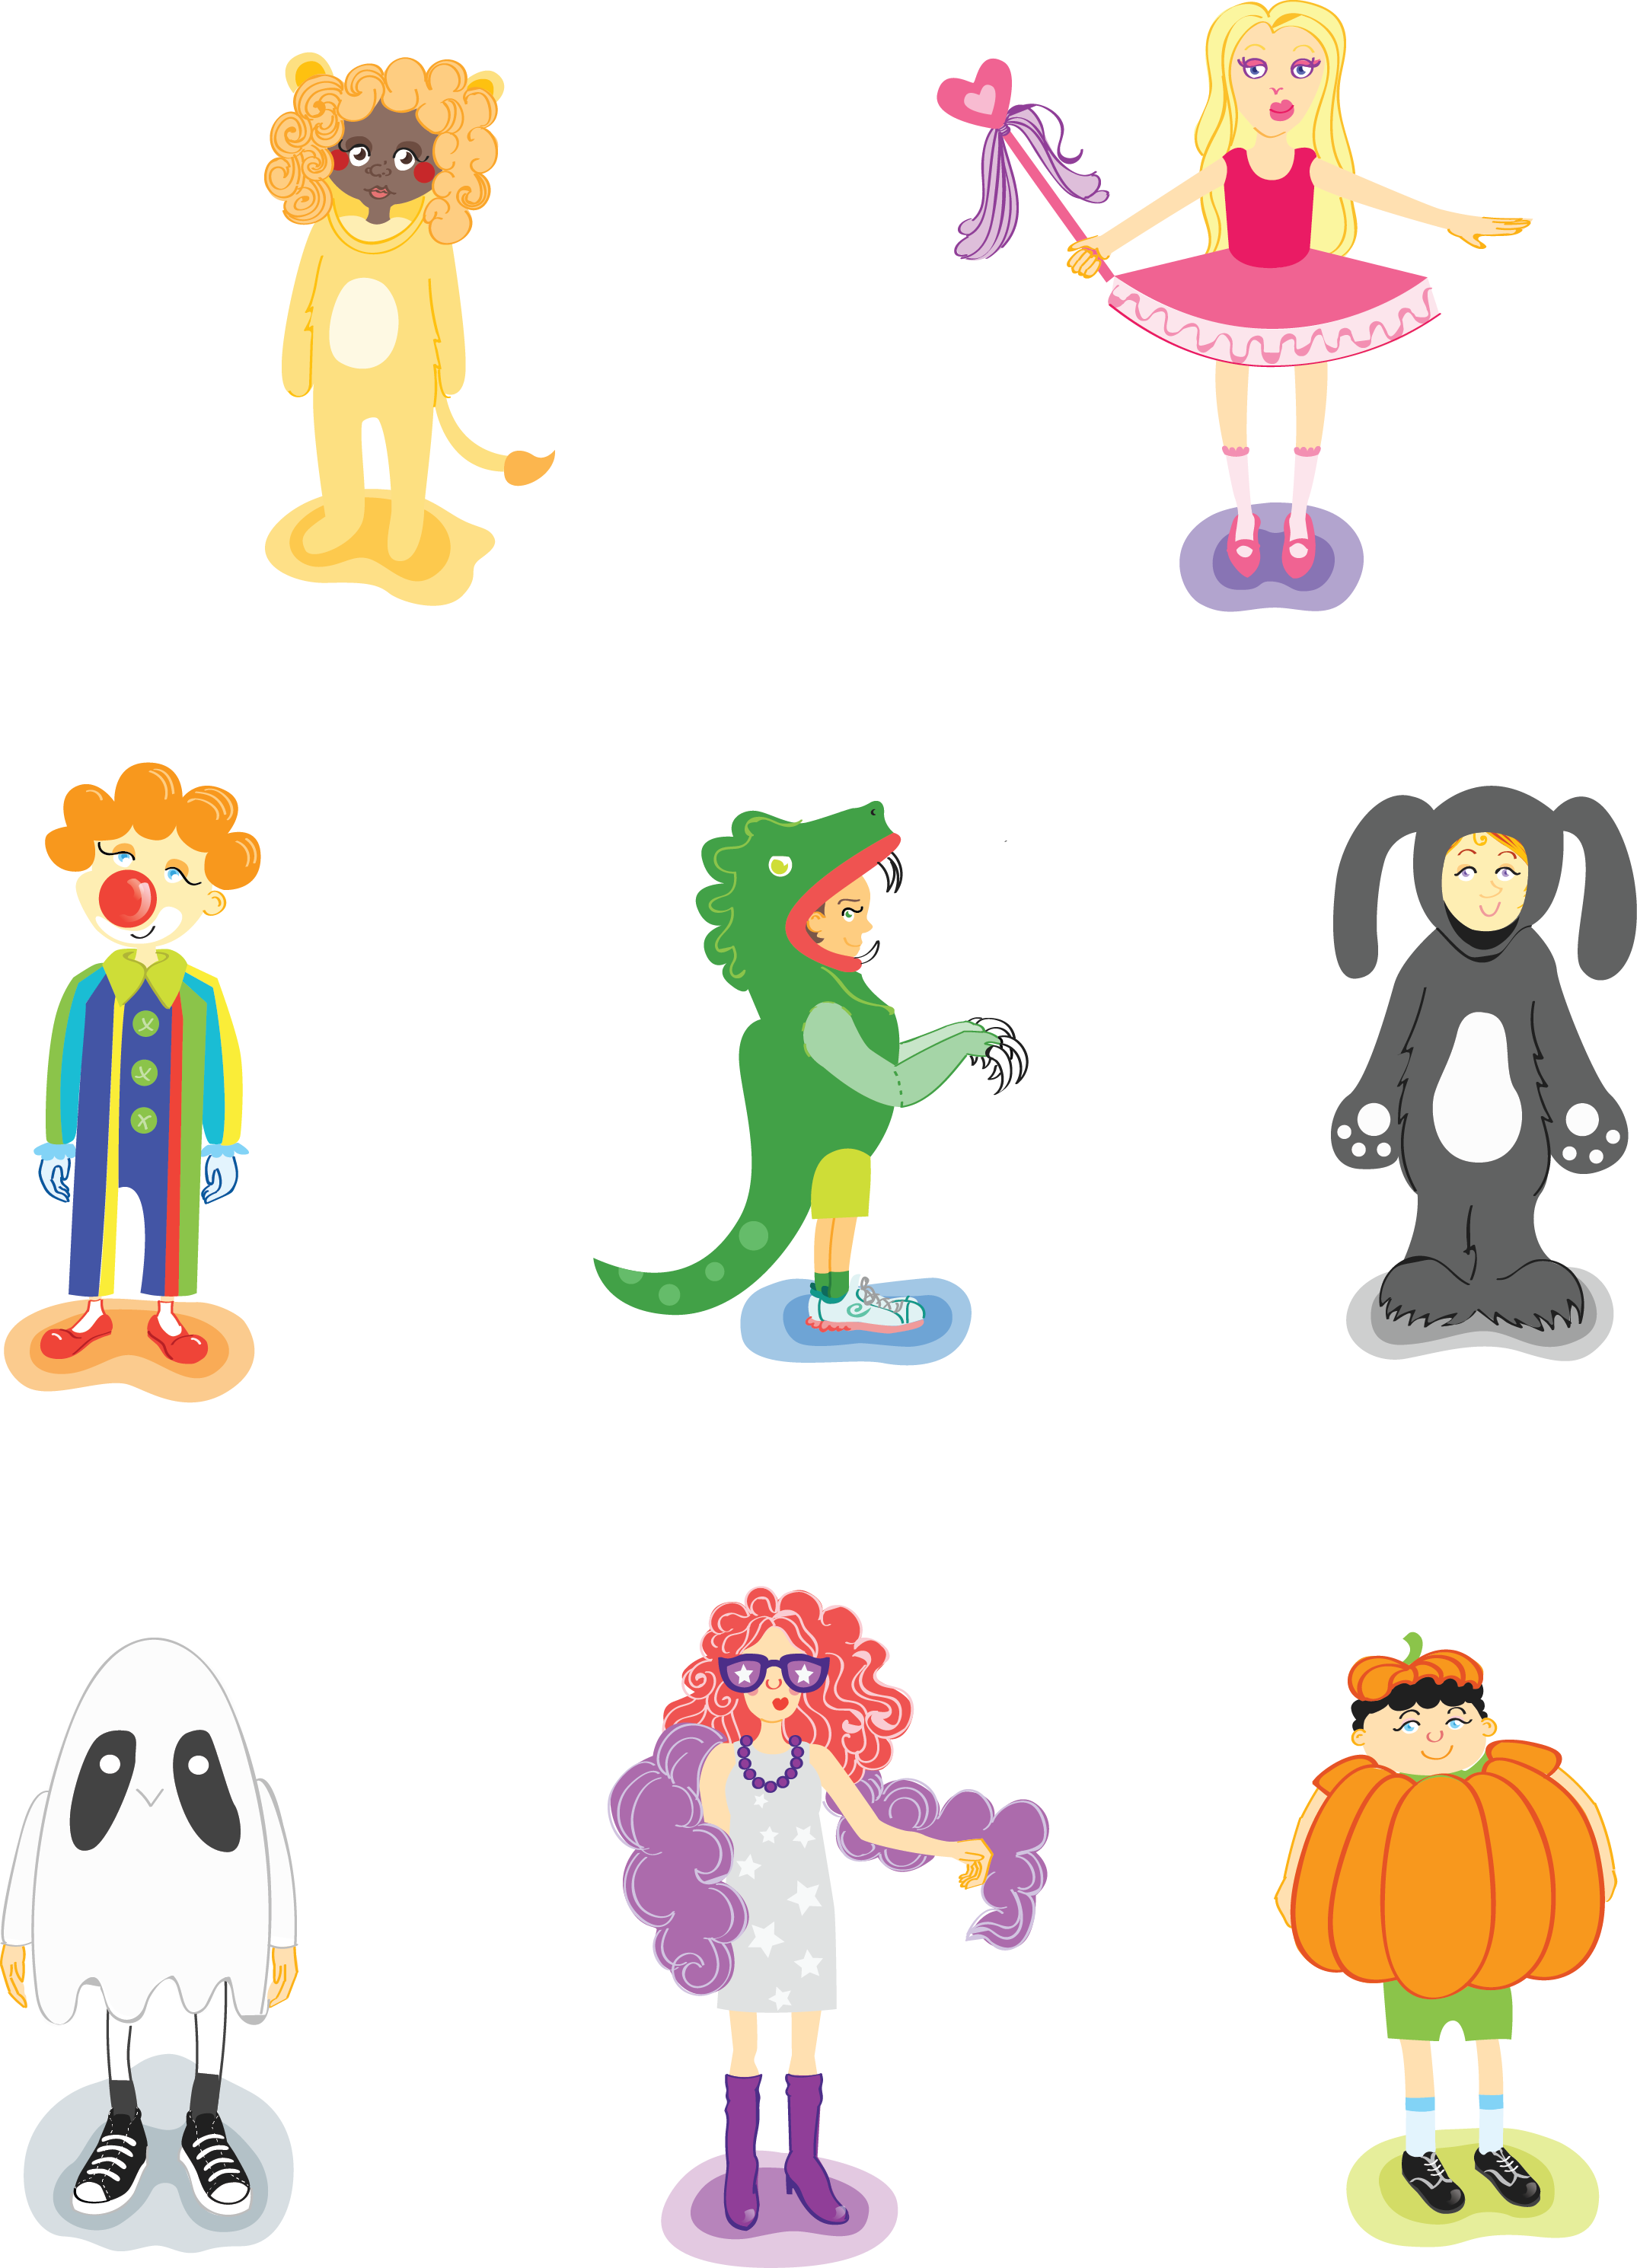 i made kids in their costumes for halloween - Halloween Images For Kids